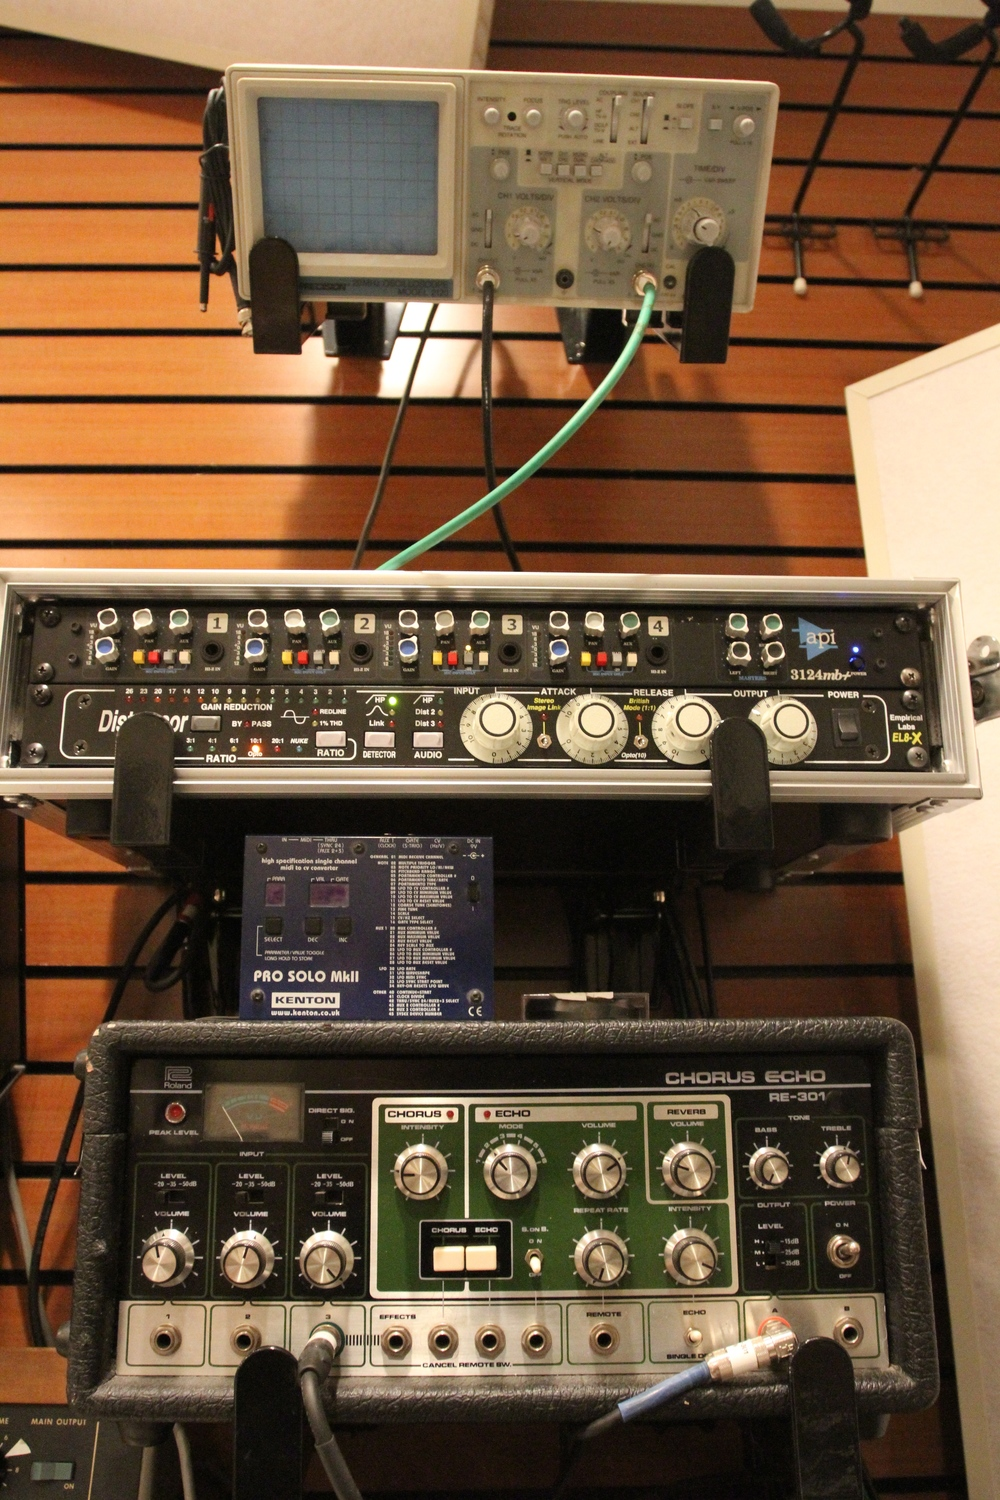 Audio fun: Space Echo, MIDI to CV, Distressor, and API Mic Preamp